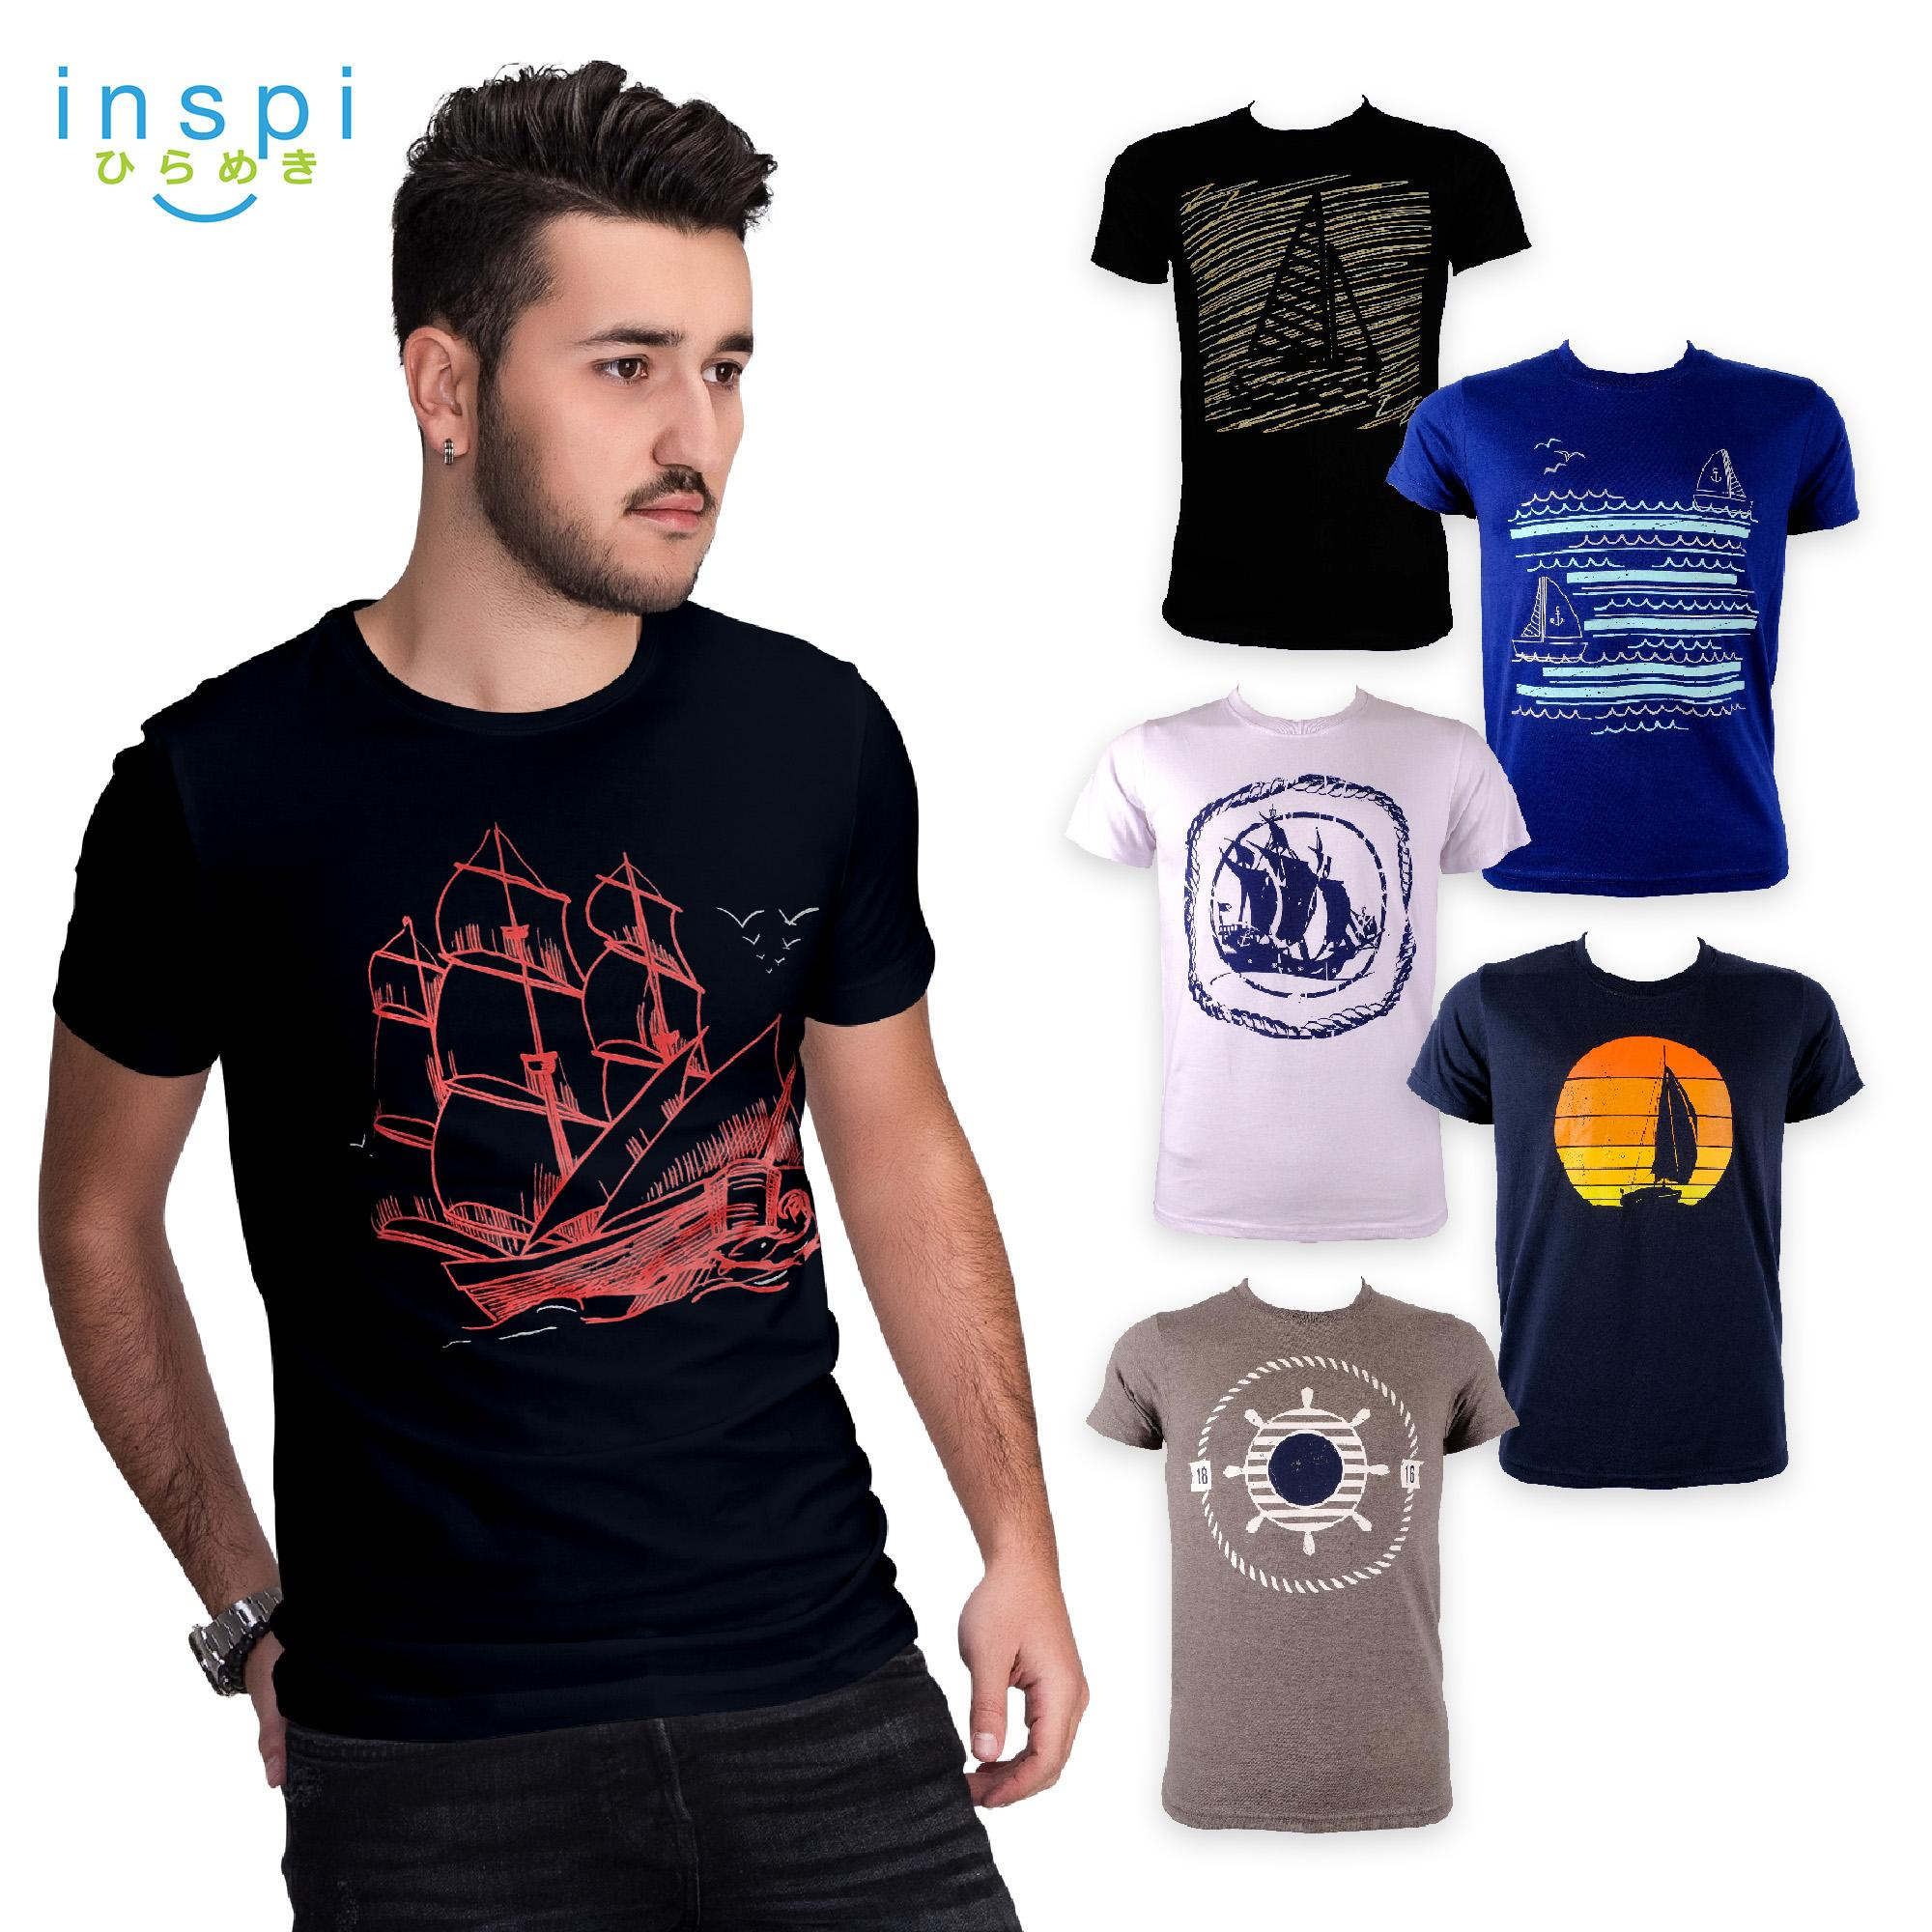 ee04654d128e INSPI Tees Sailing Collection tshirt printed graphic tee Mens t shirt shirts  for men tshirts sale